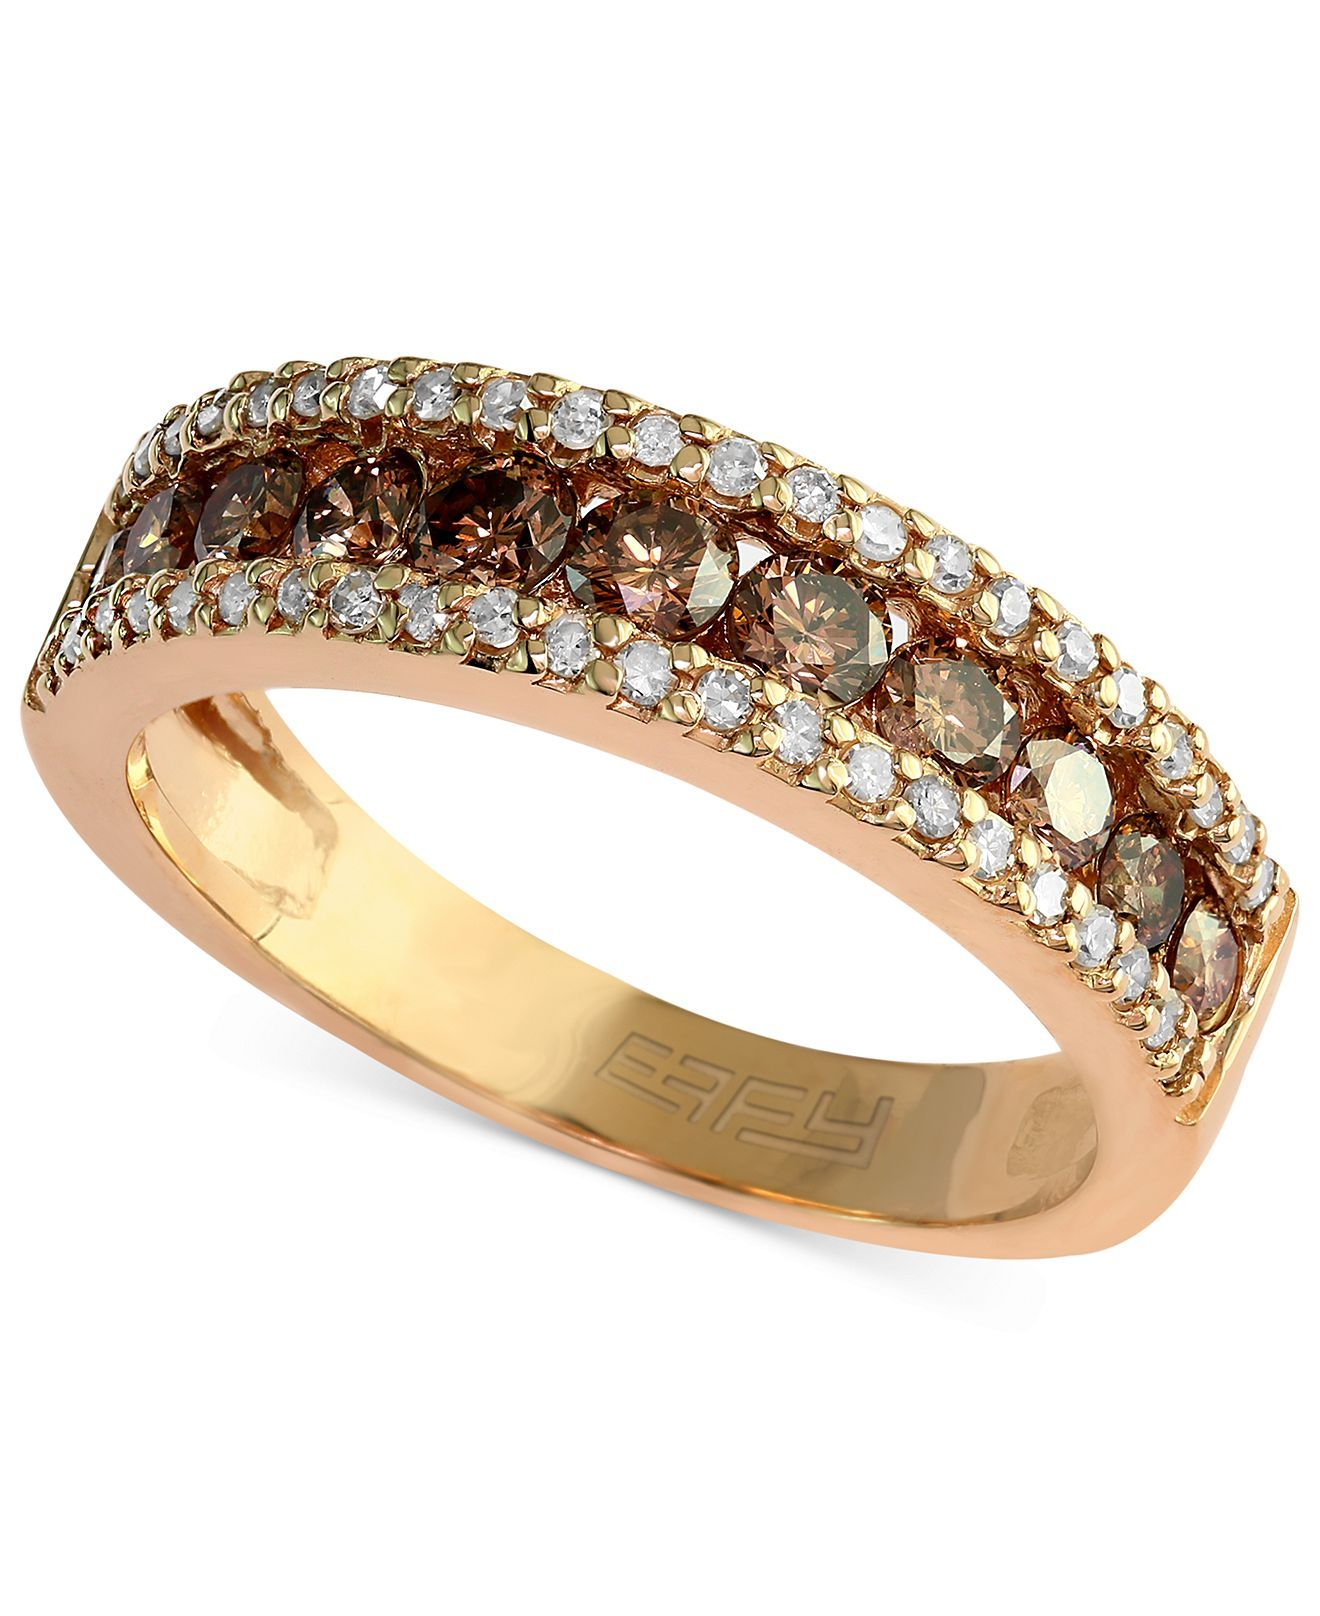 Espresso by EFFY Brown and White Diamond Three-Row Ring (7/8 ct. t.w.) in 14k Gold - Effy - Jewelry & Watches - Macy's